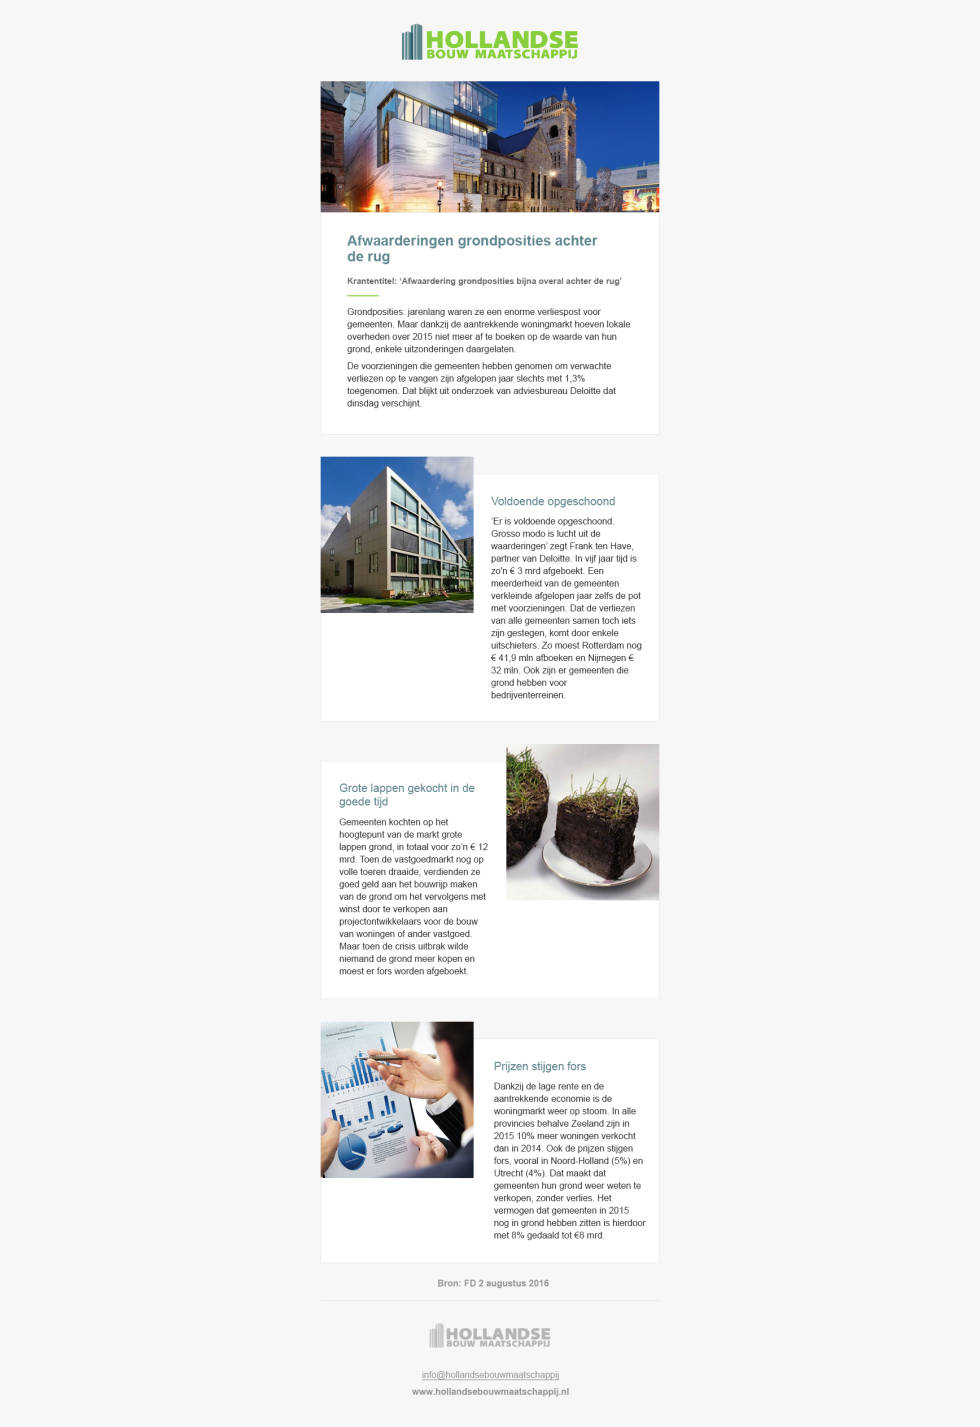 A Mailchimp email newsletter template.